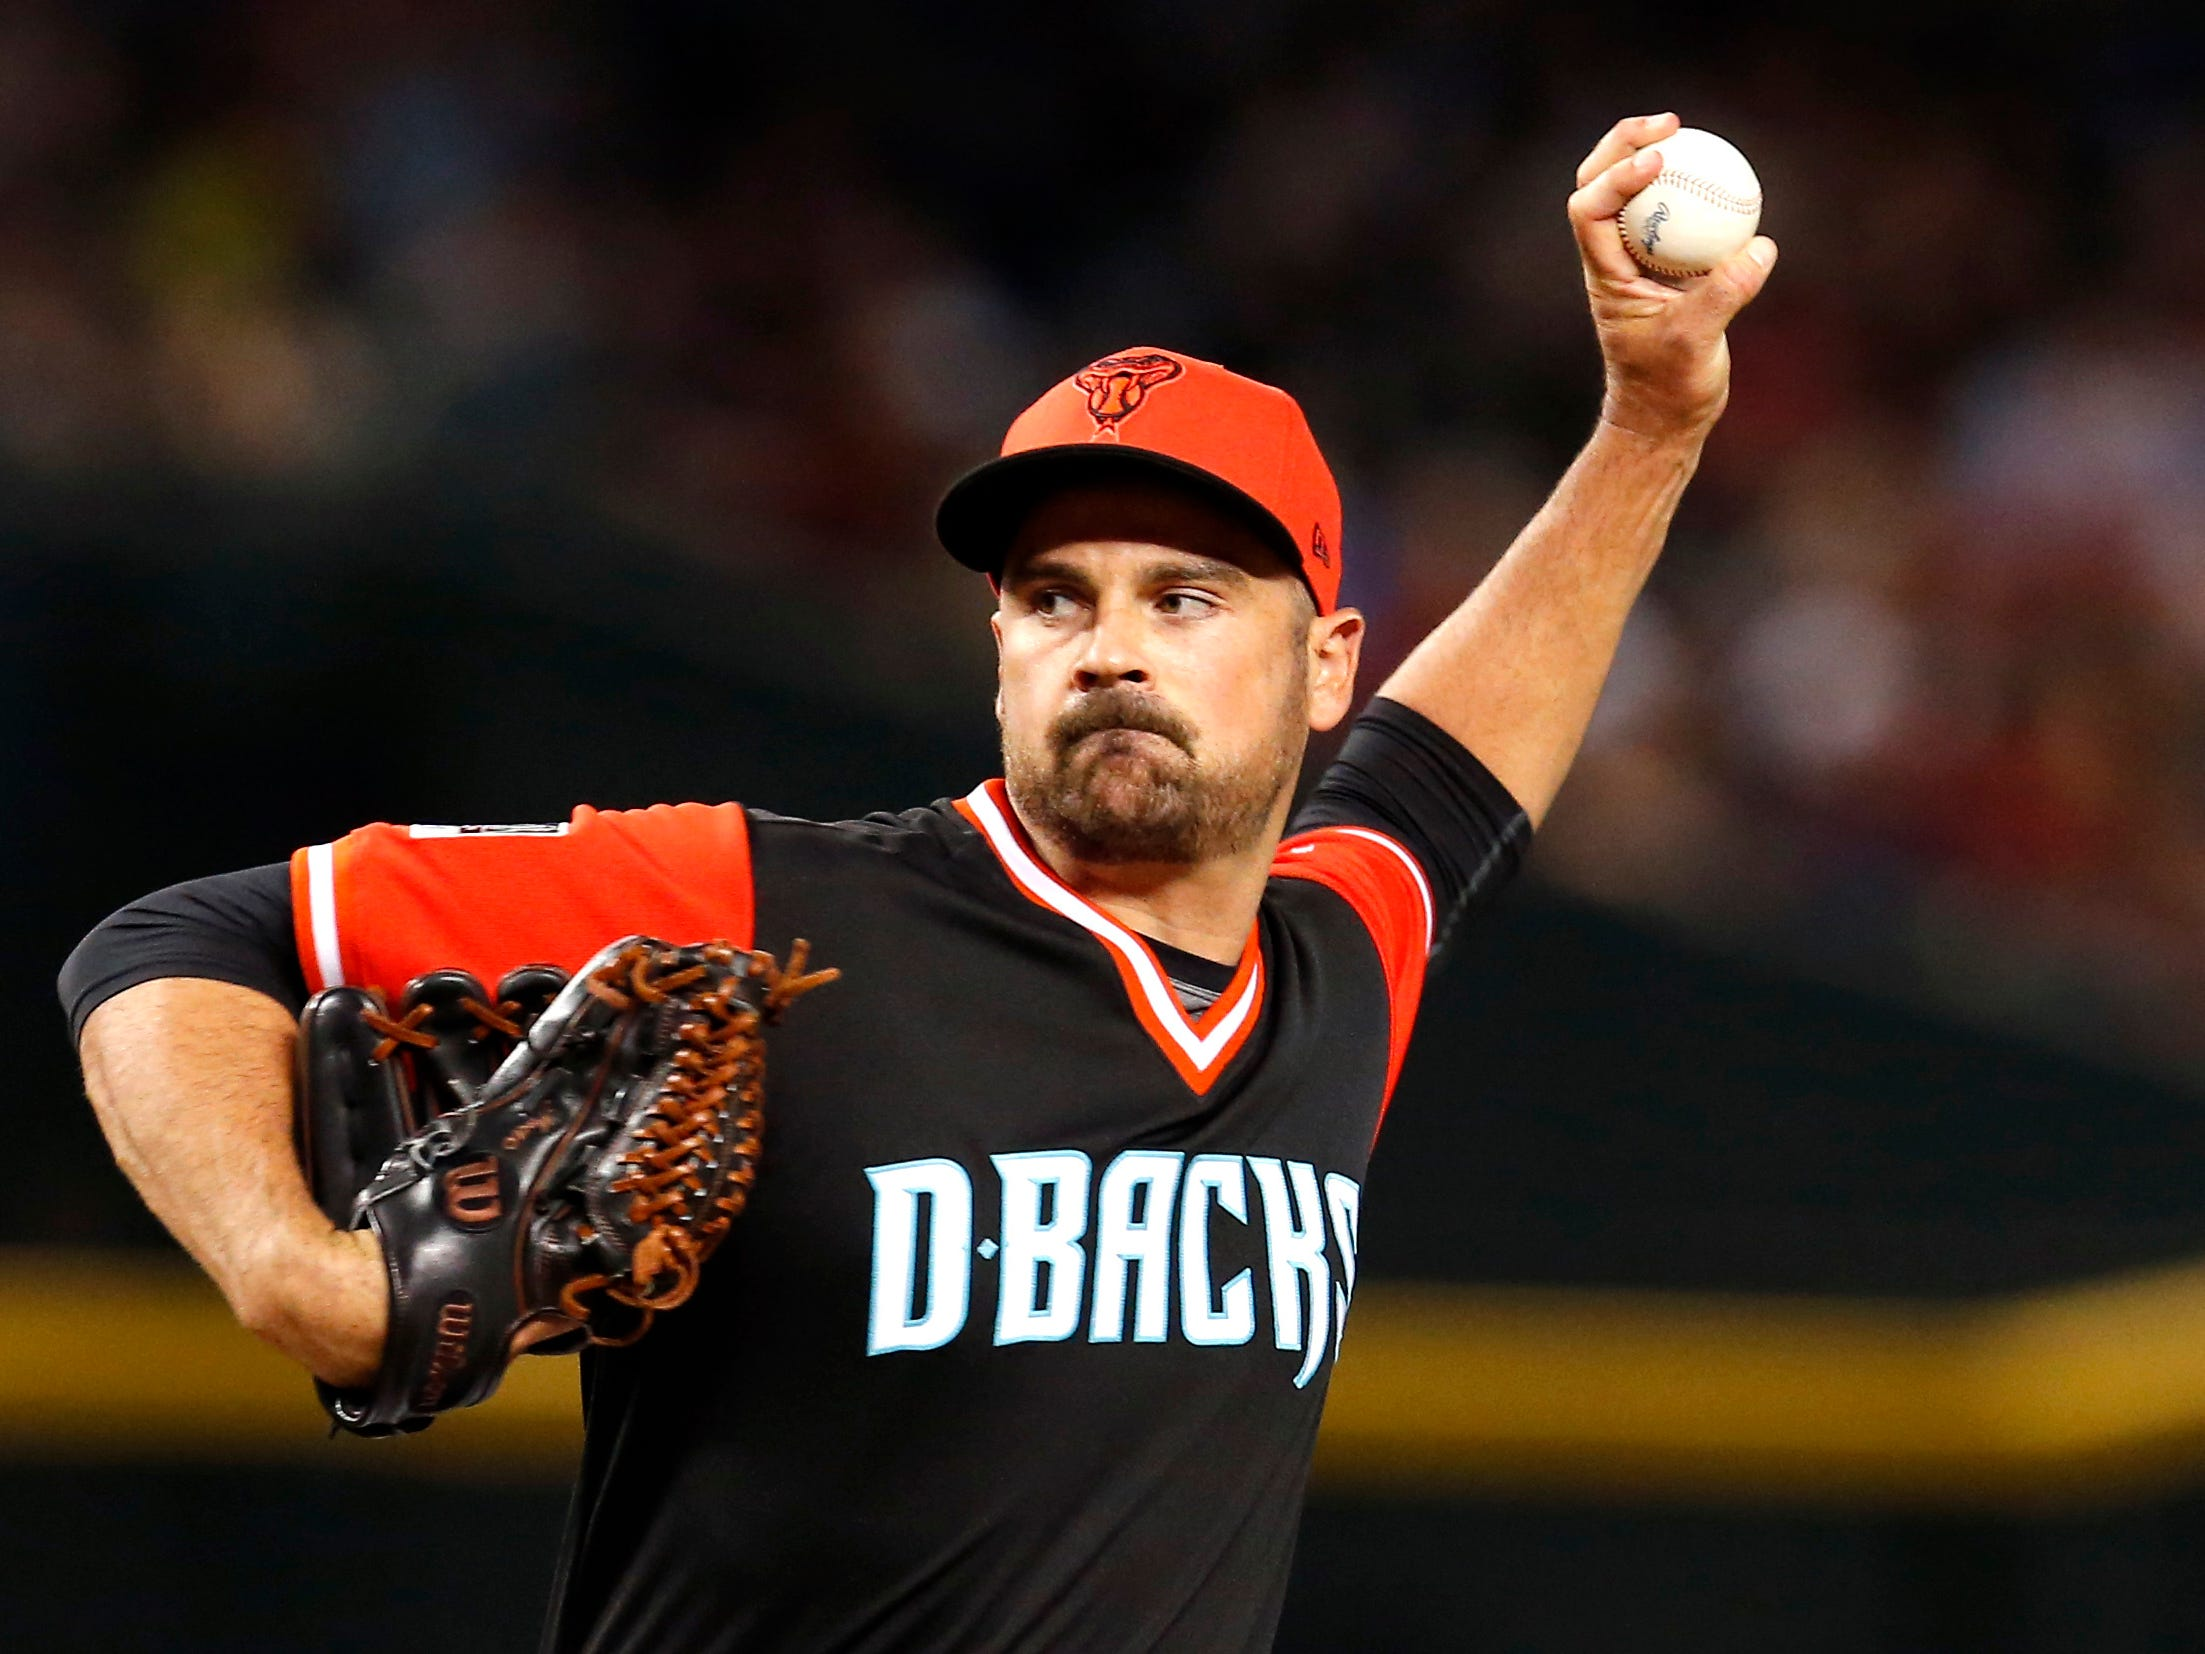 Arizona Diamondbacks relief pitcher T.J. McFarland (30) in the first inning during a baseball game against the Seattle Mariners, Friday, Aug. 24, 2018, in Phoenix.